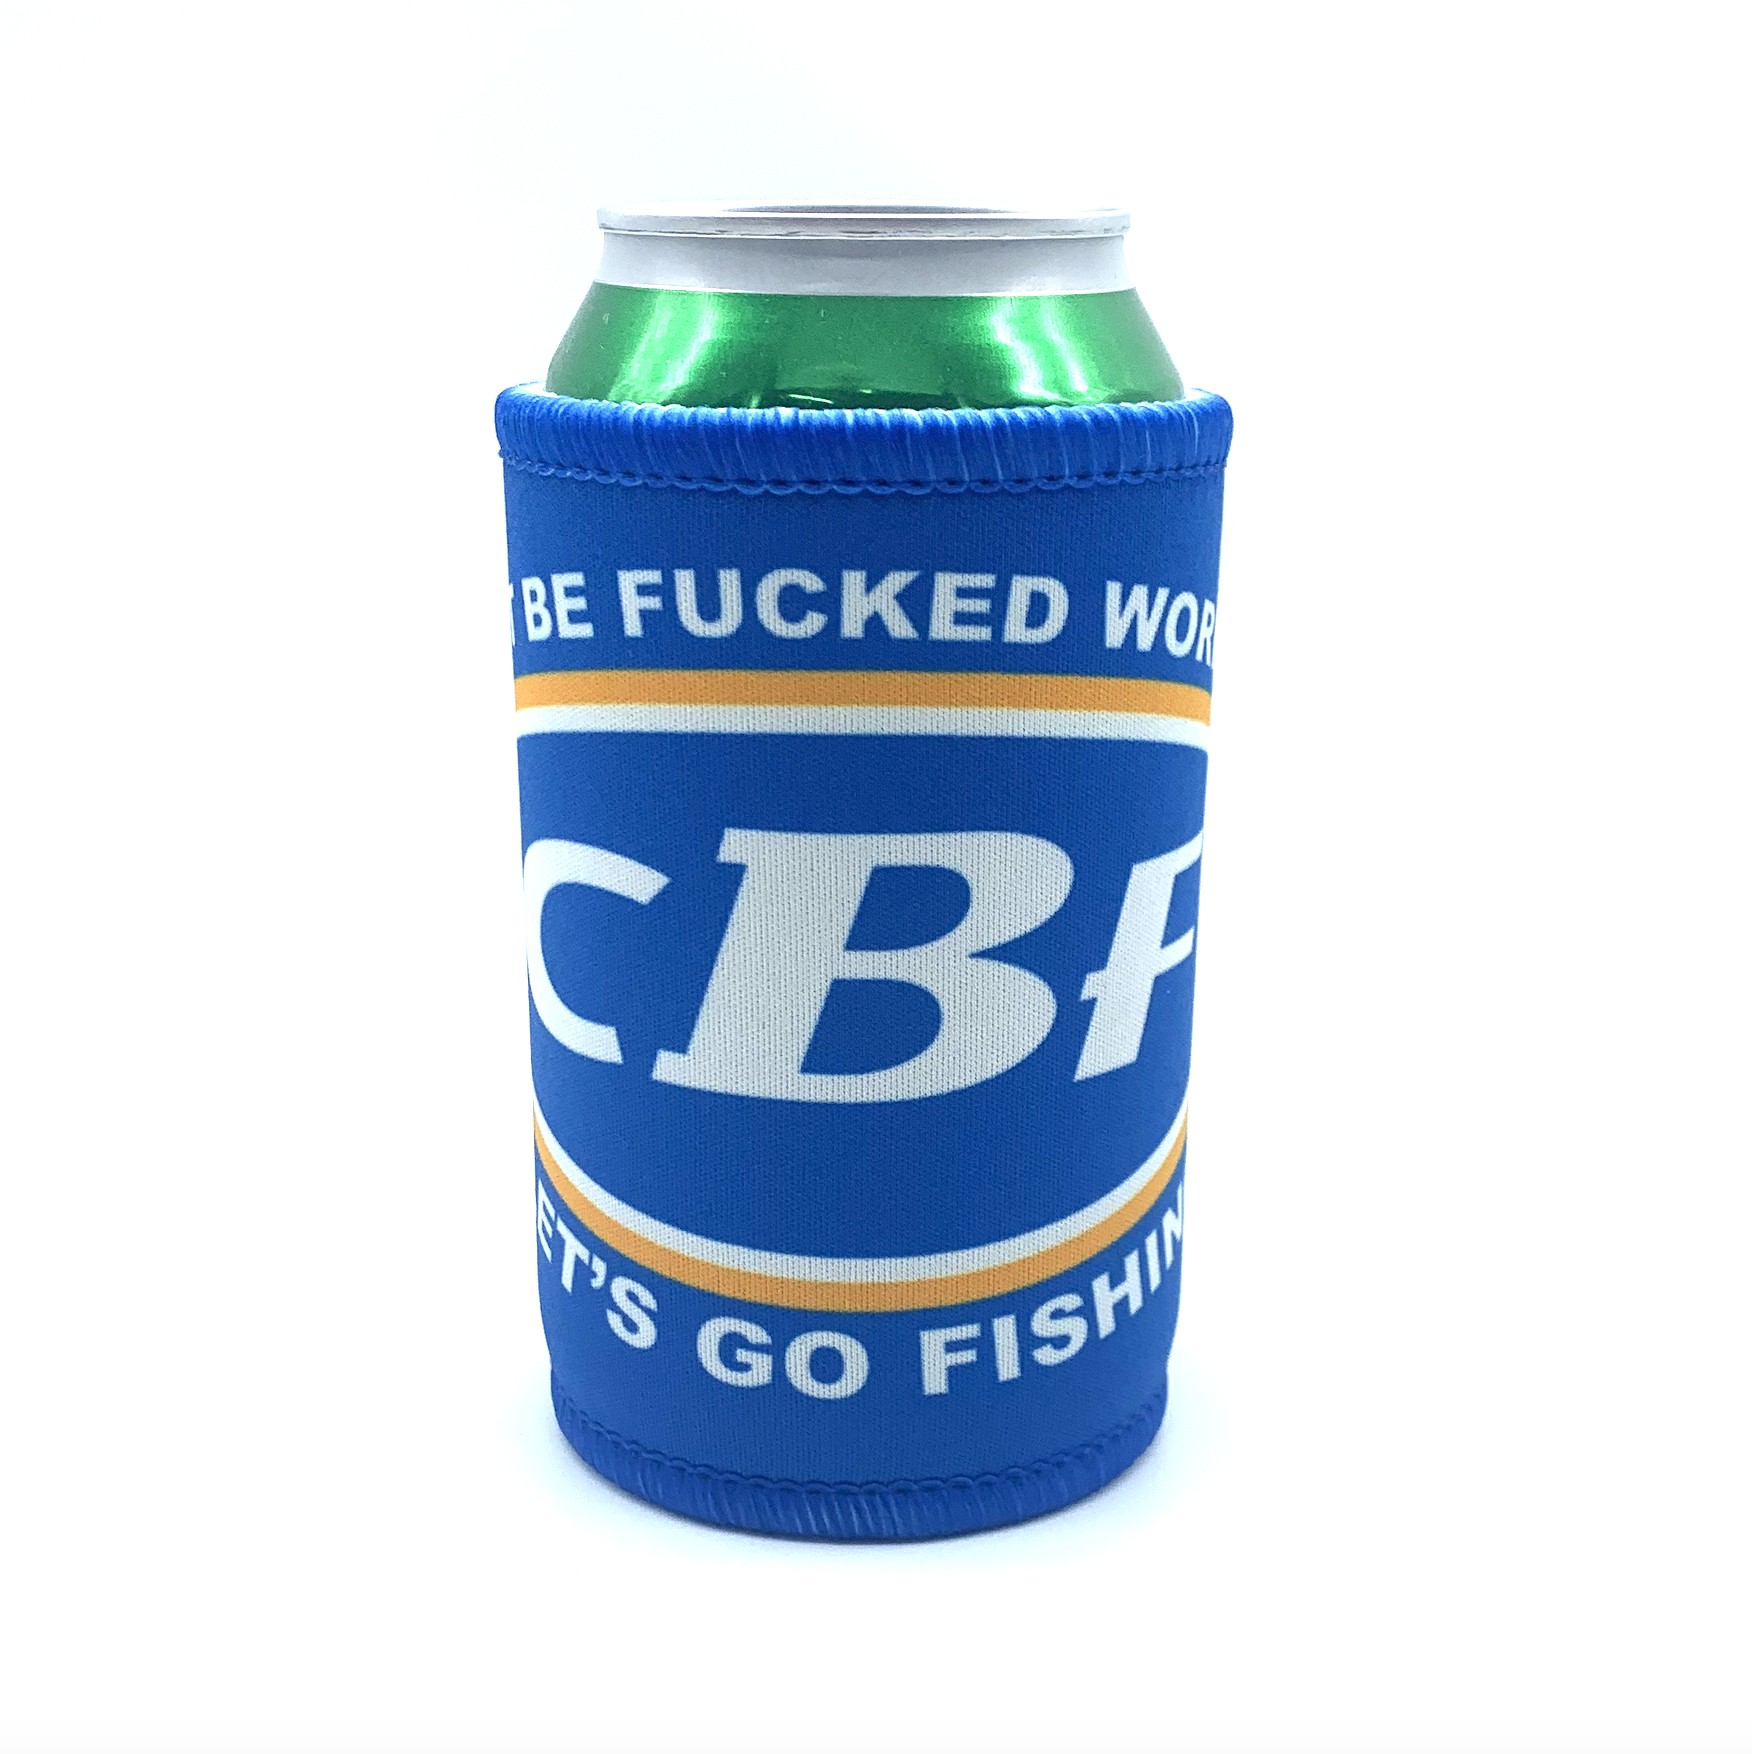 CAN'T BE F'D PARODY STUBBY HOLDER